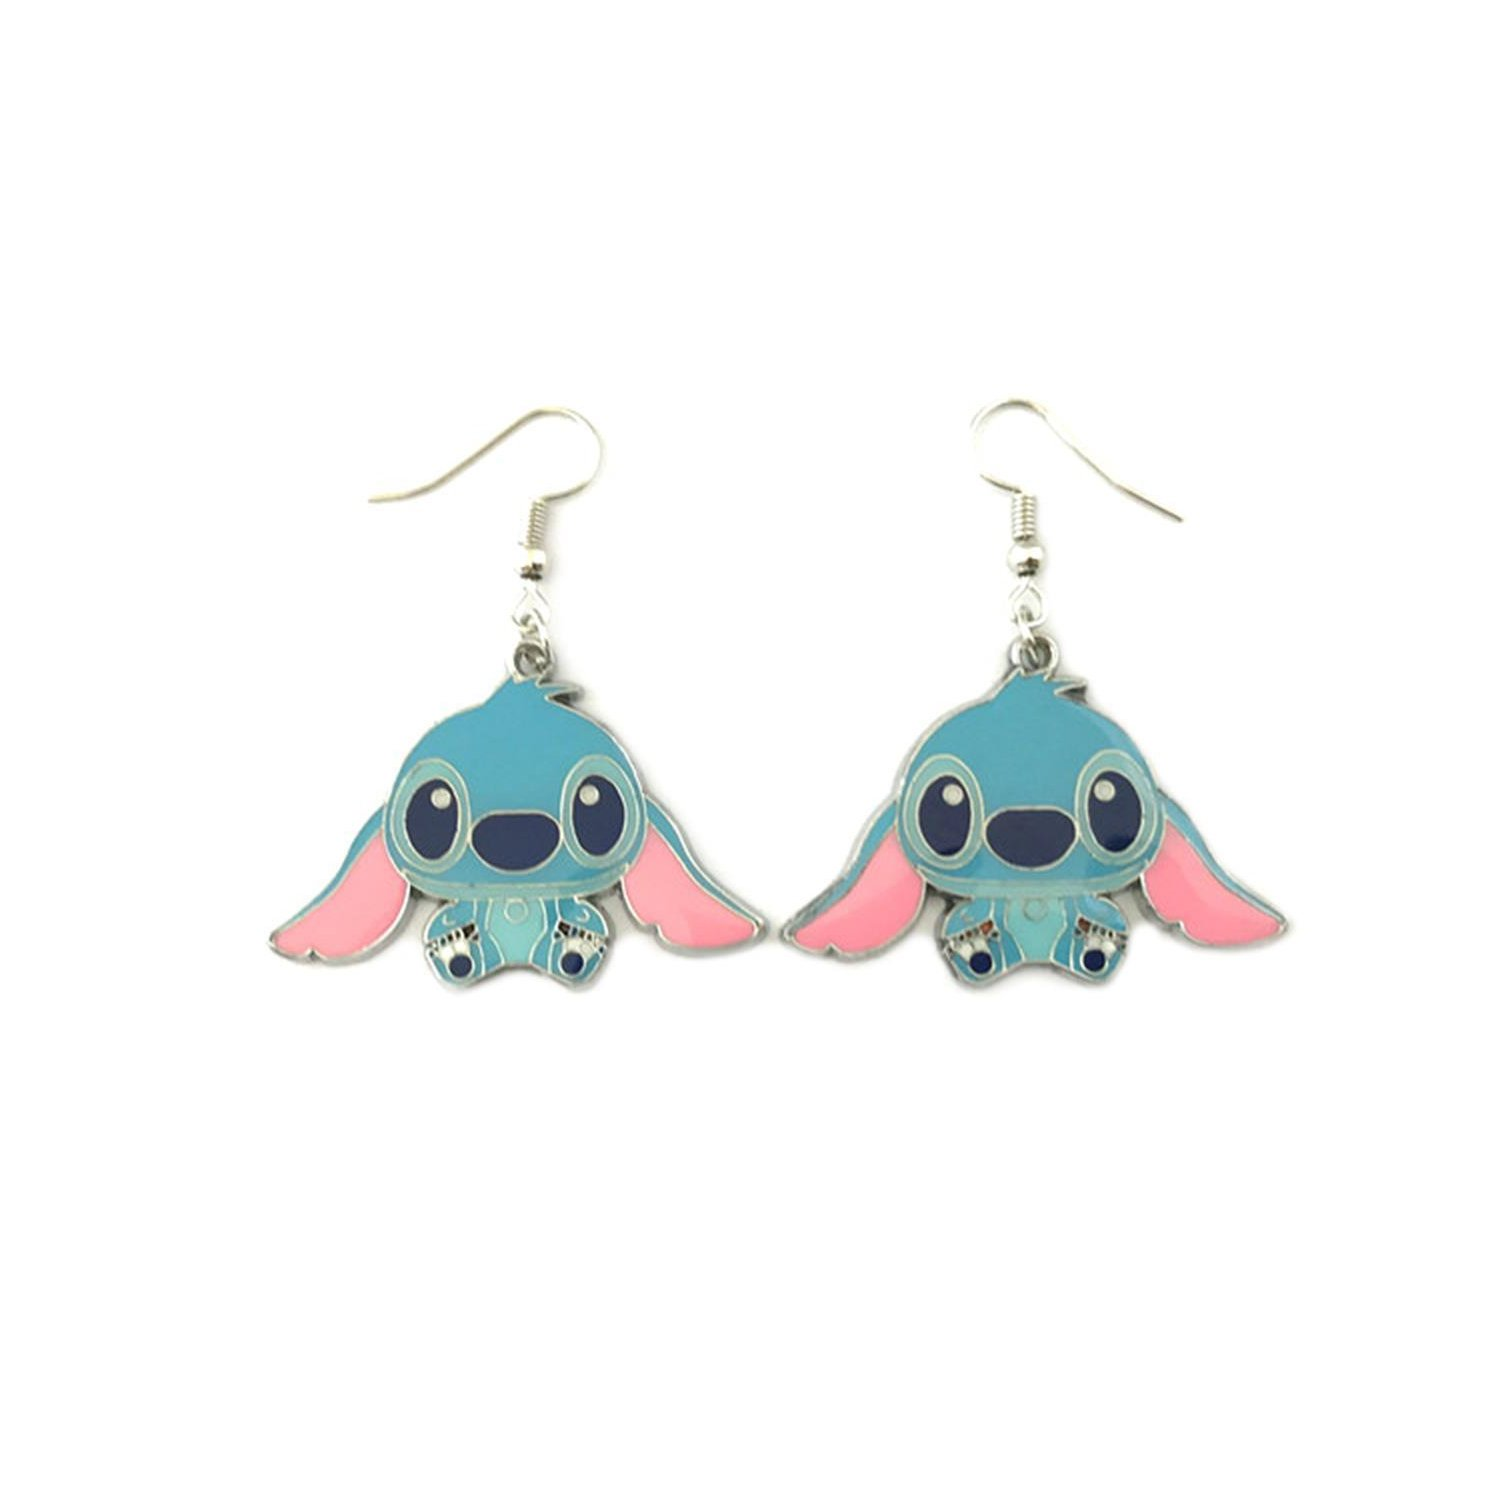 Stitch Experiment 626 Lilo & Stitch Drop Earrings With Gift Box from Outlander Gear